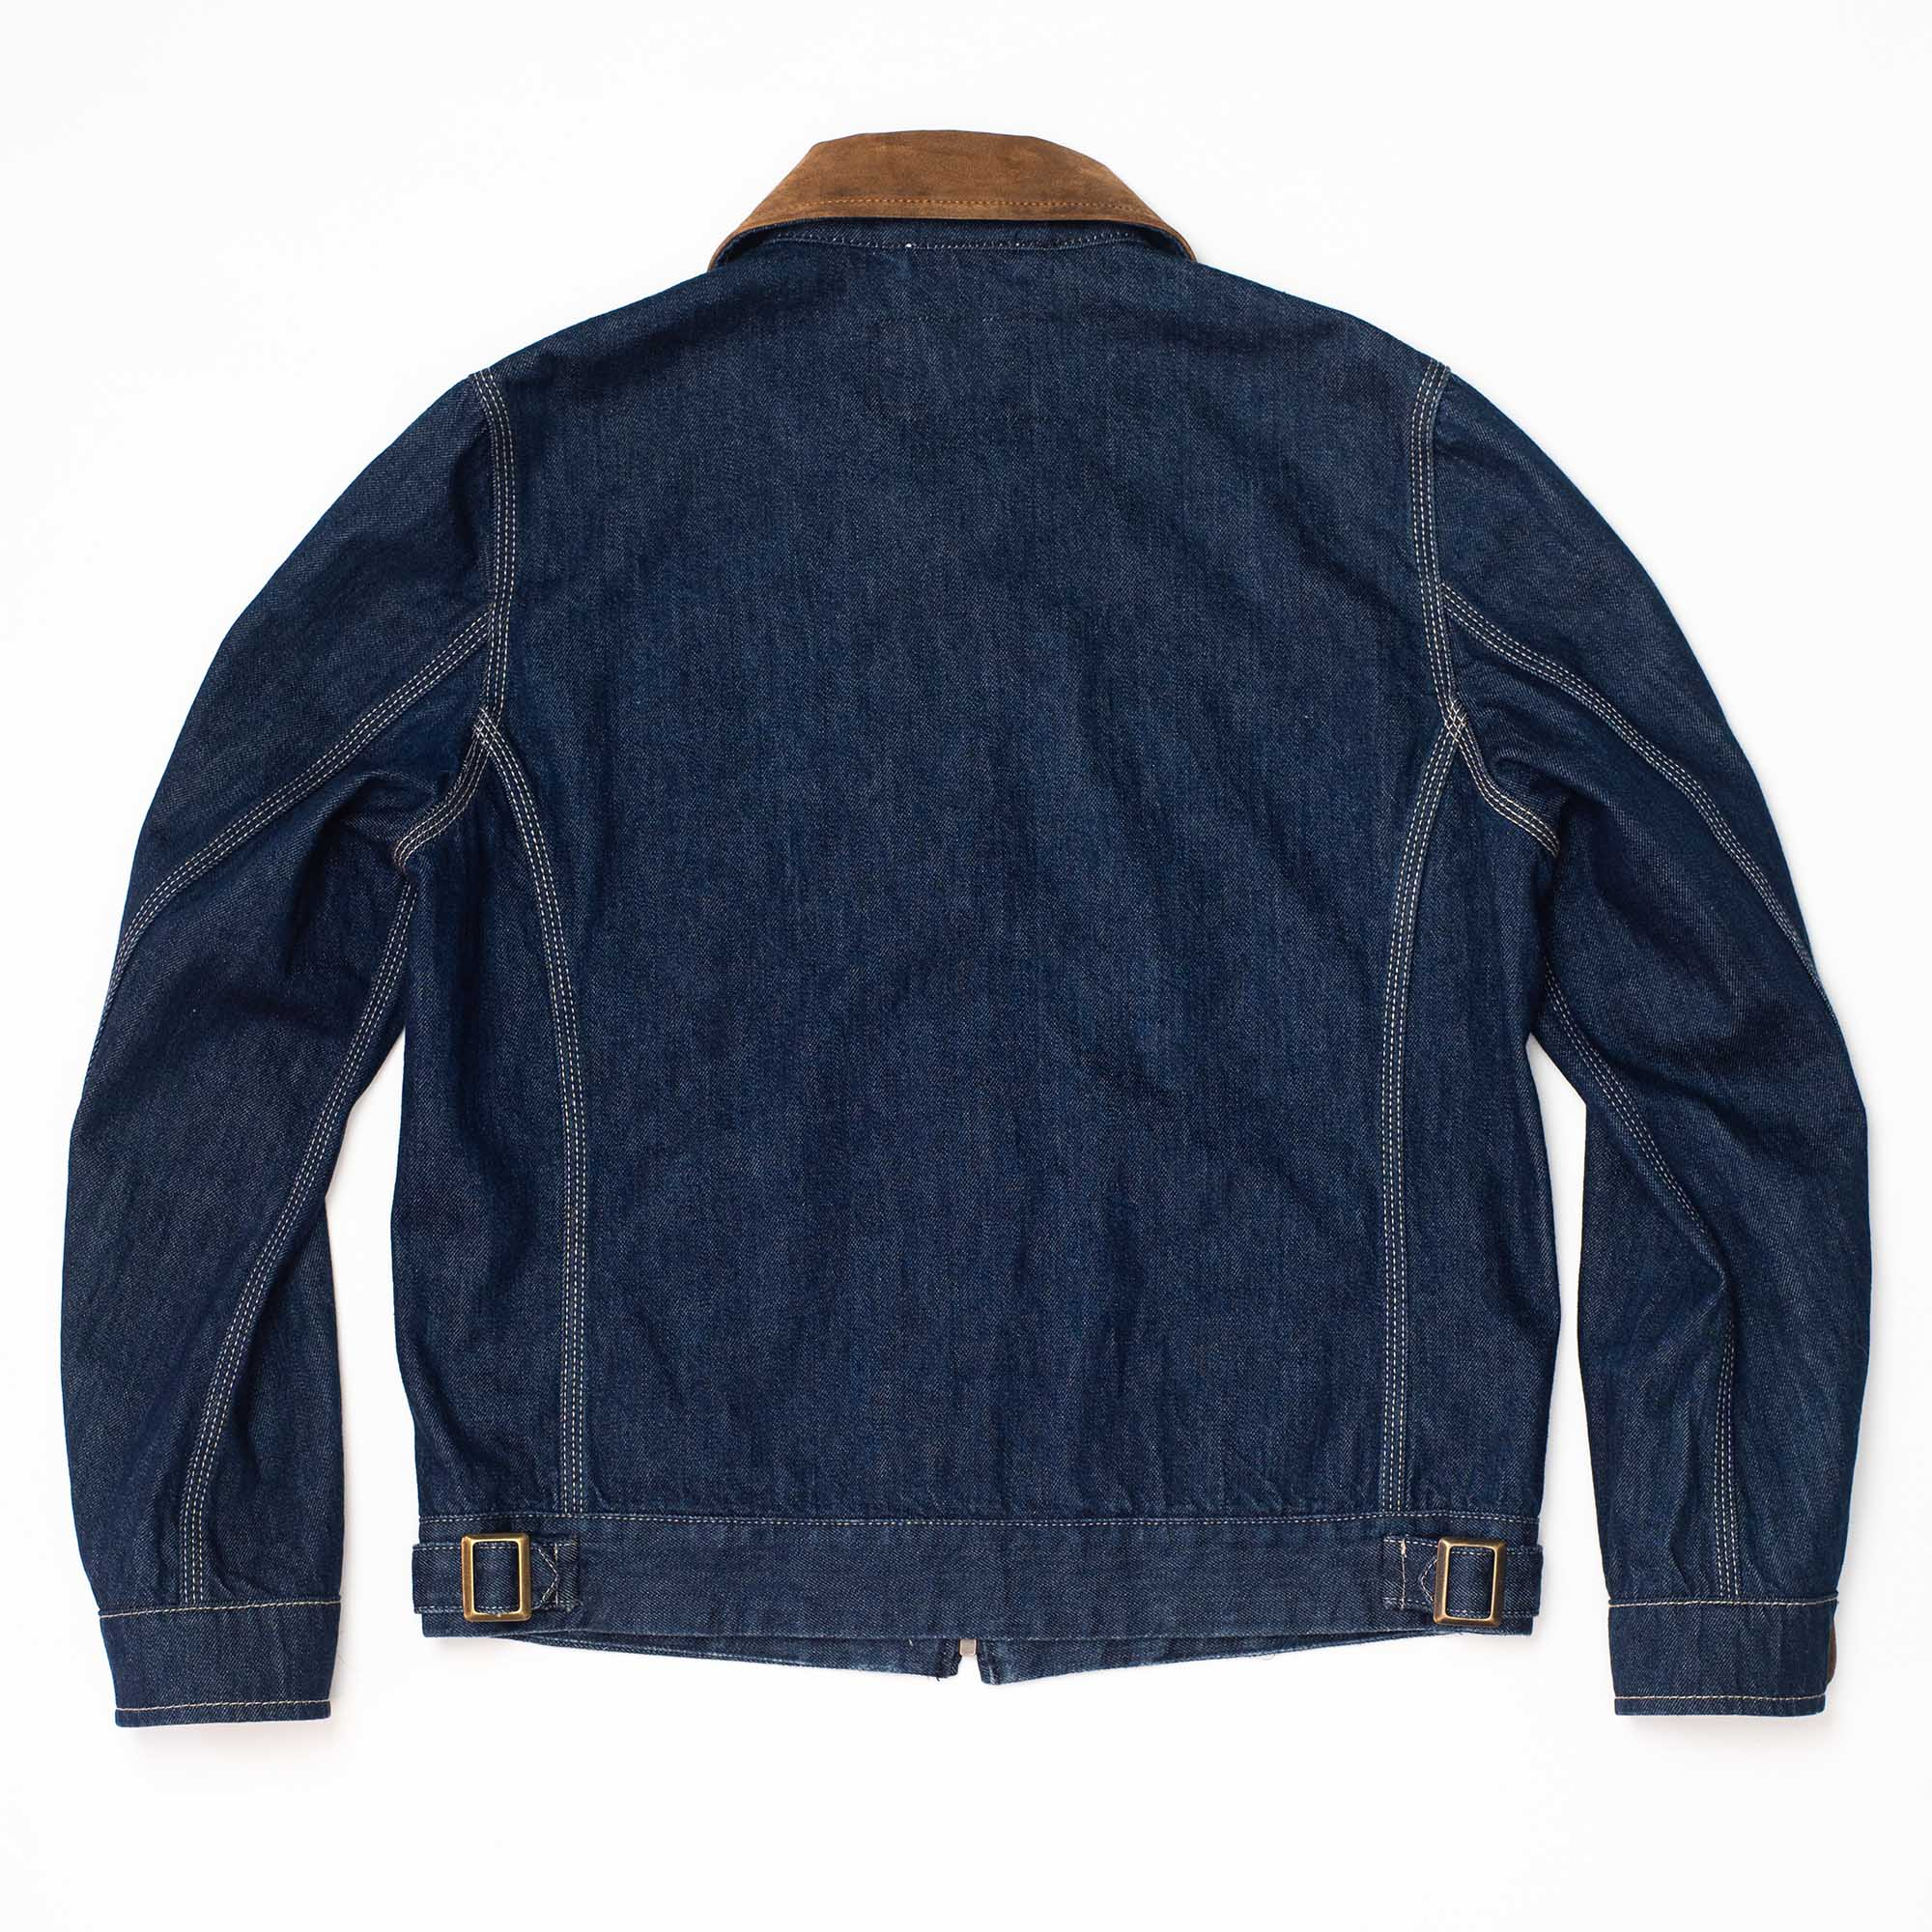 shangri-la-heritage-varenne-ranch-selvedge-candiani-denim-jacket-still-life-back